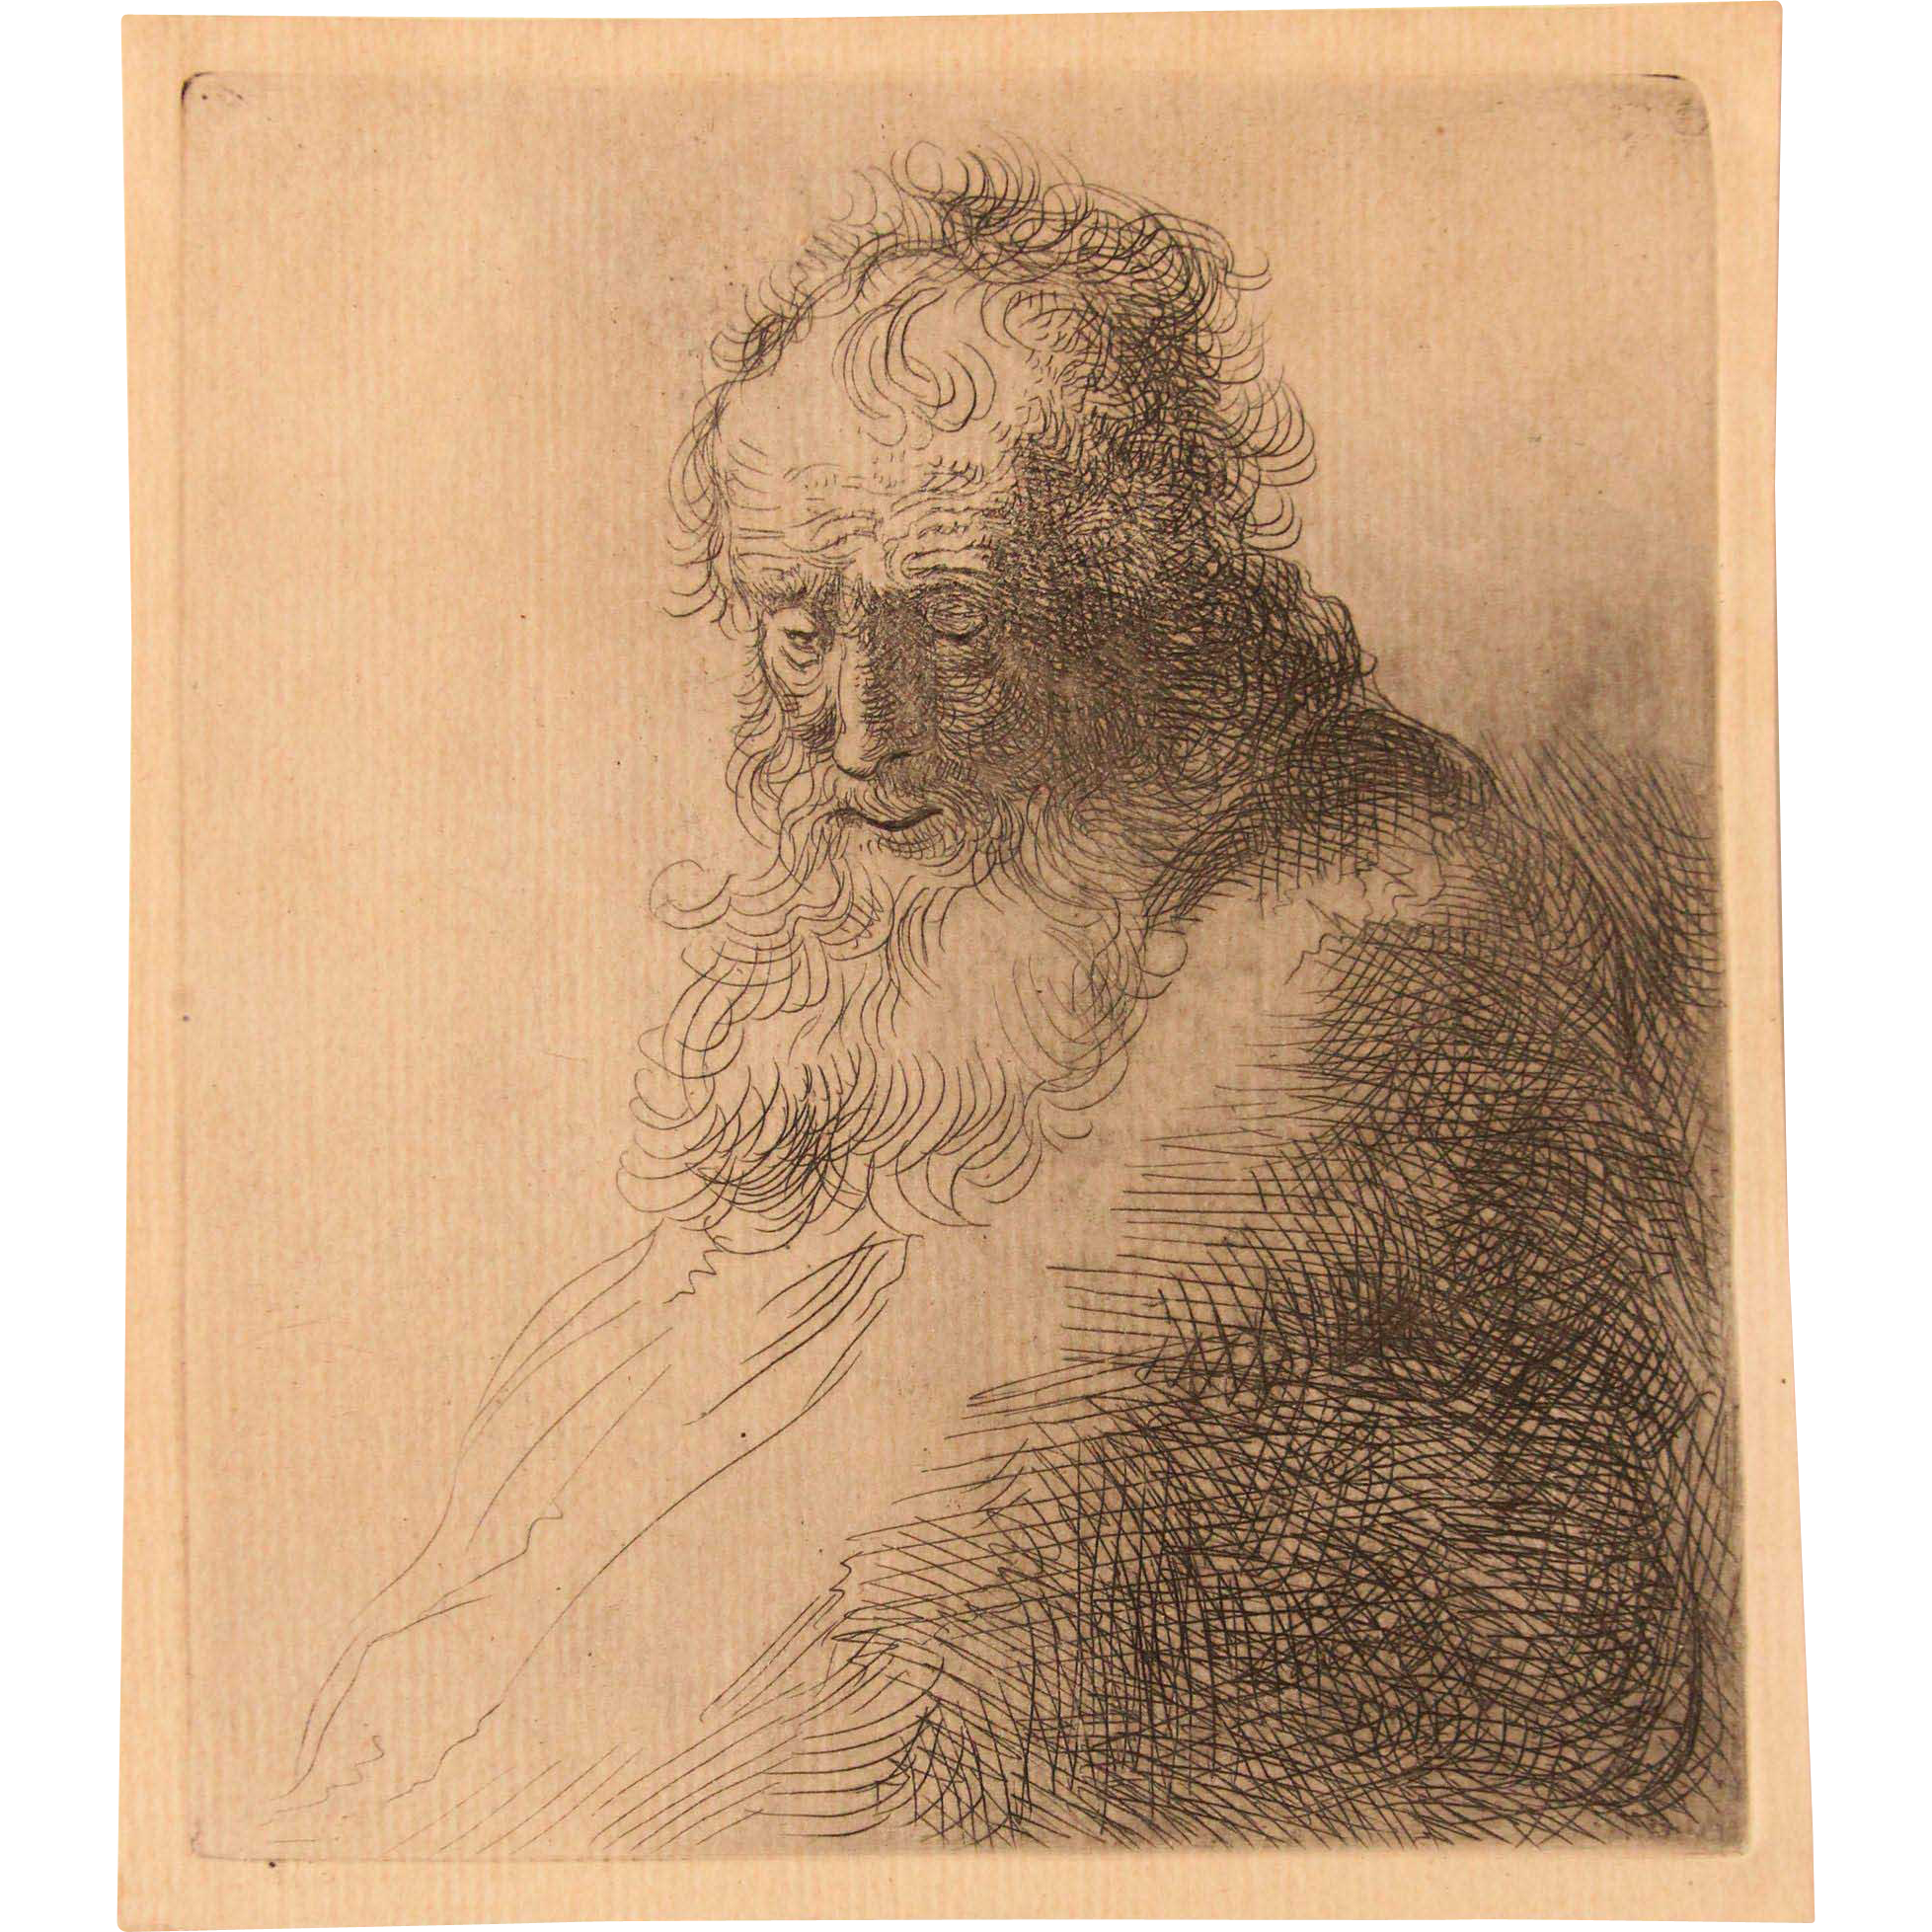 Masterpiece bearded old man. Etching drawing pen and ink banner